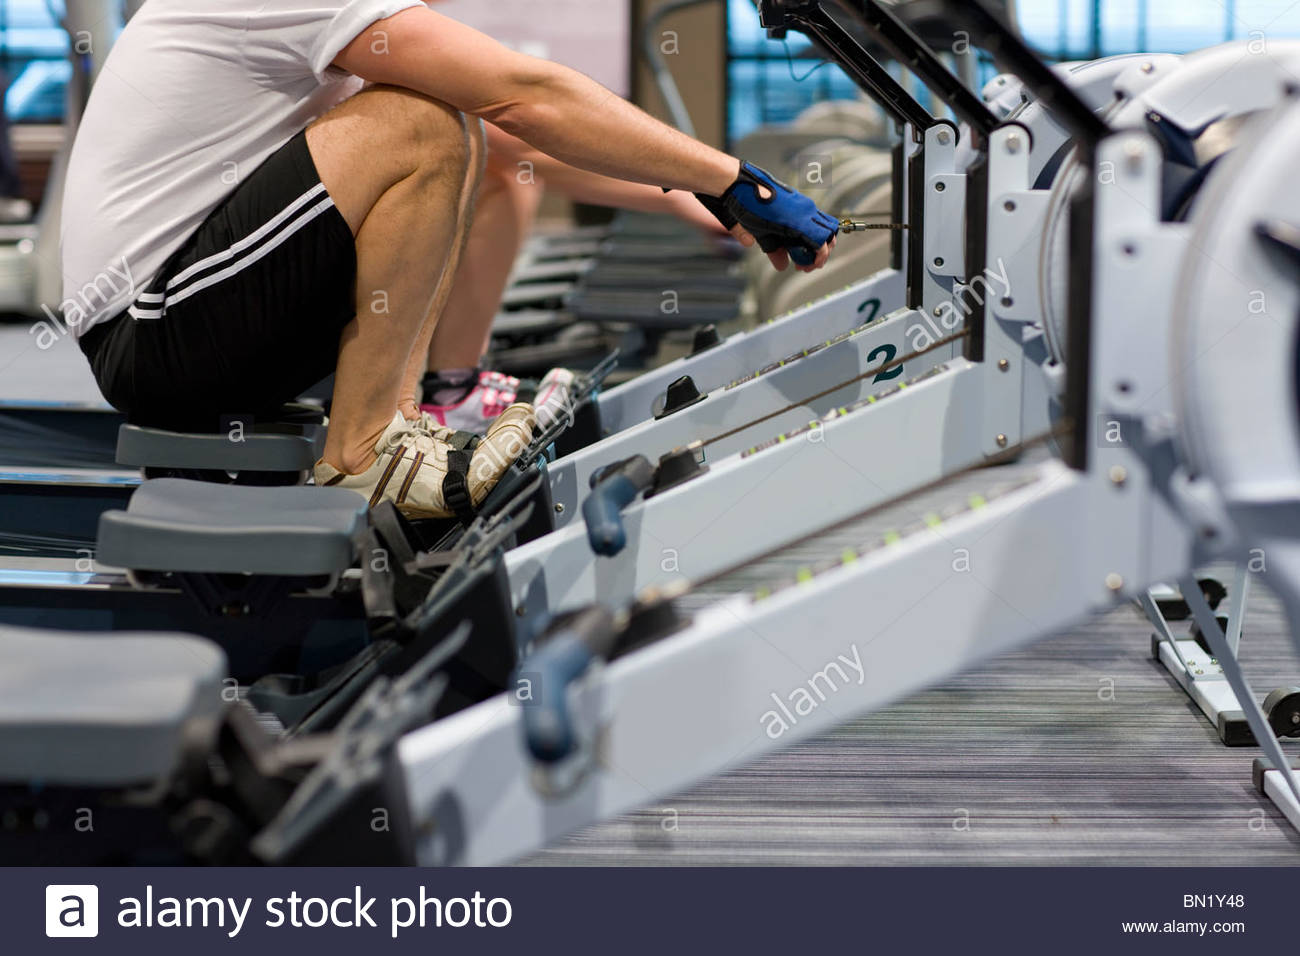 man-working-out-on-rowing-machine-in-hea